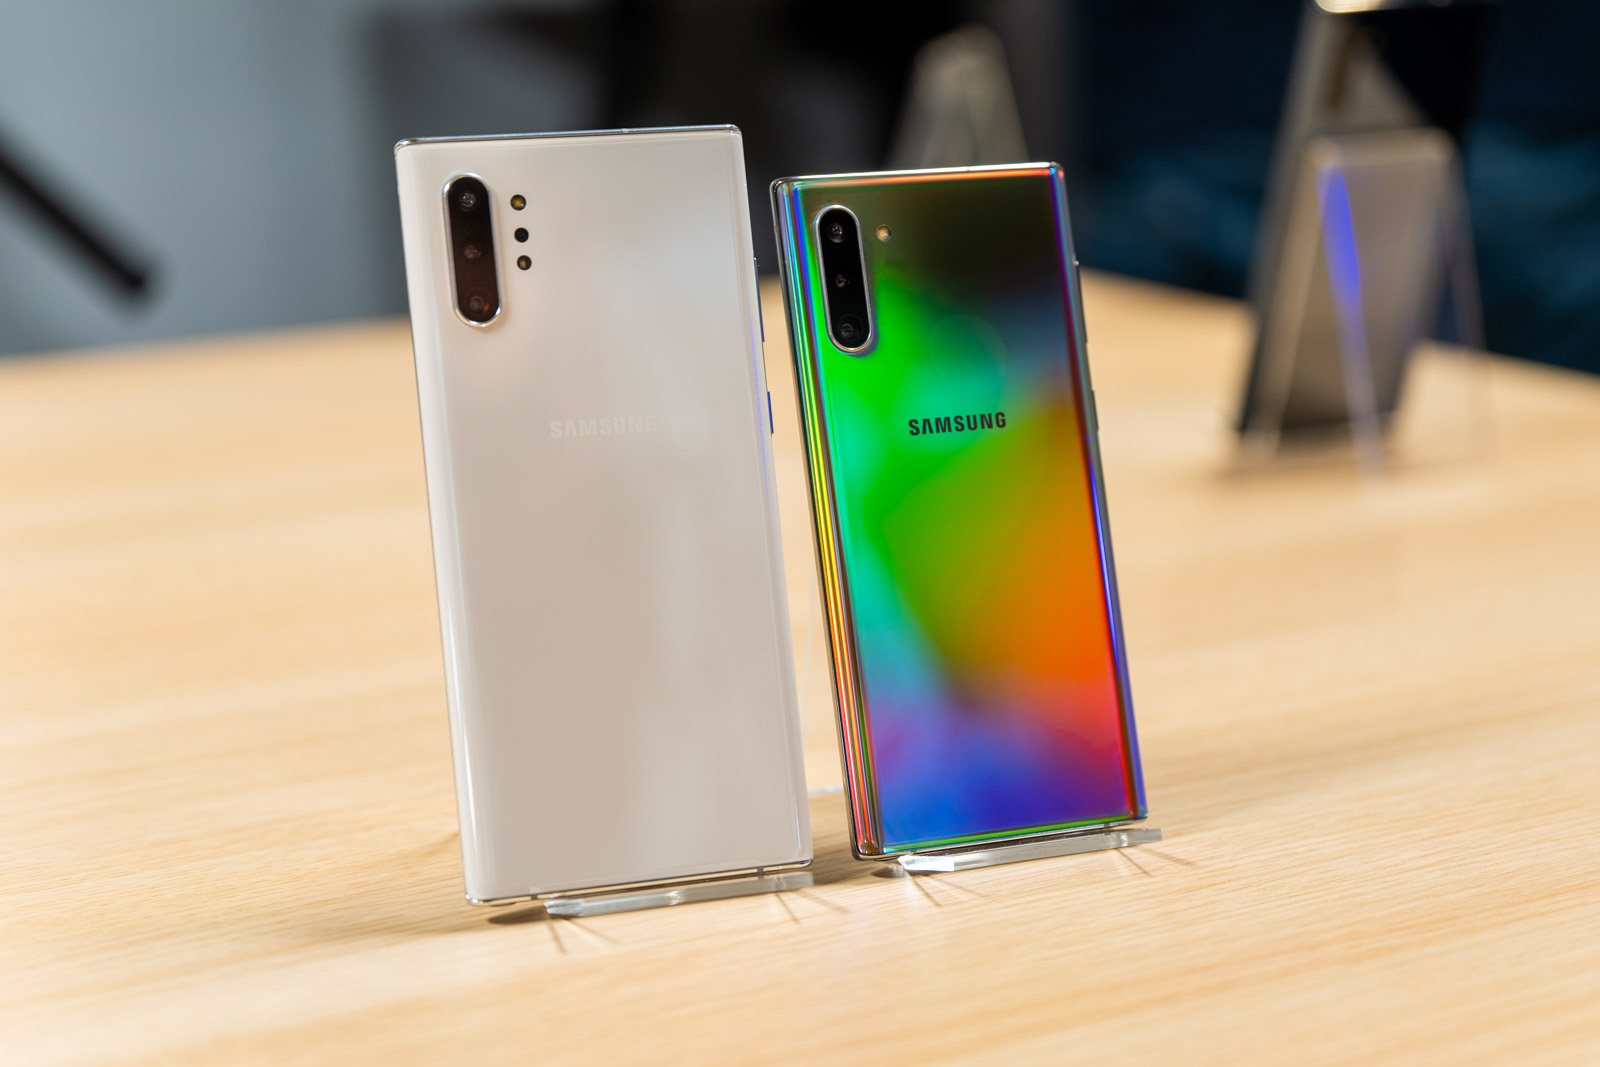 DxOMark has no doubt. Galaxy Note 10+ has the best camera on the market